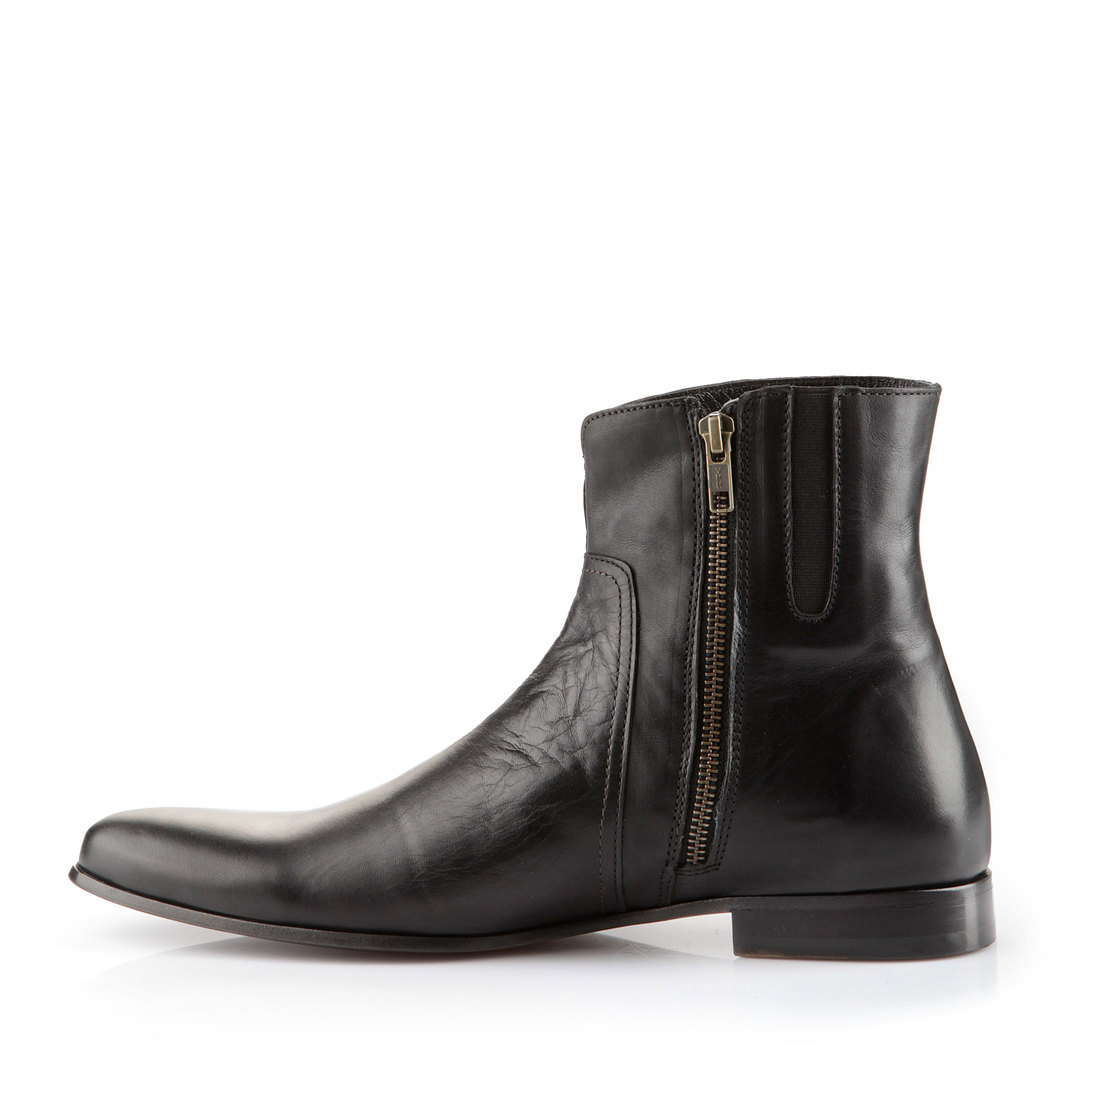 buffalo plateau ankle boots for men in black leather buy online in buffalo online shop buffalo. Black Bedroom Furniture Sets. Home Design Ideas